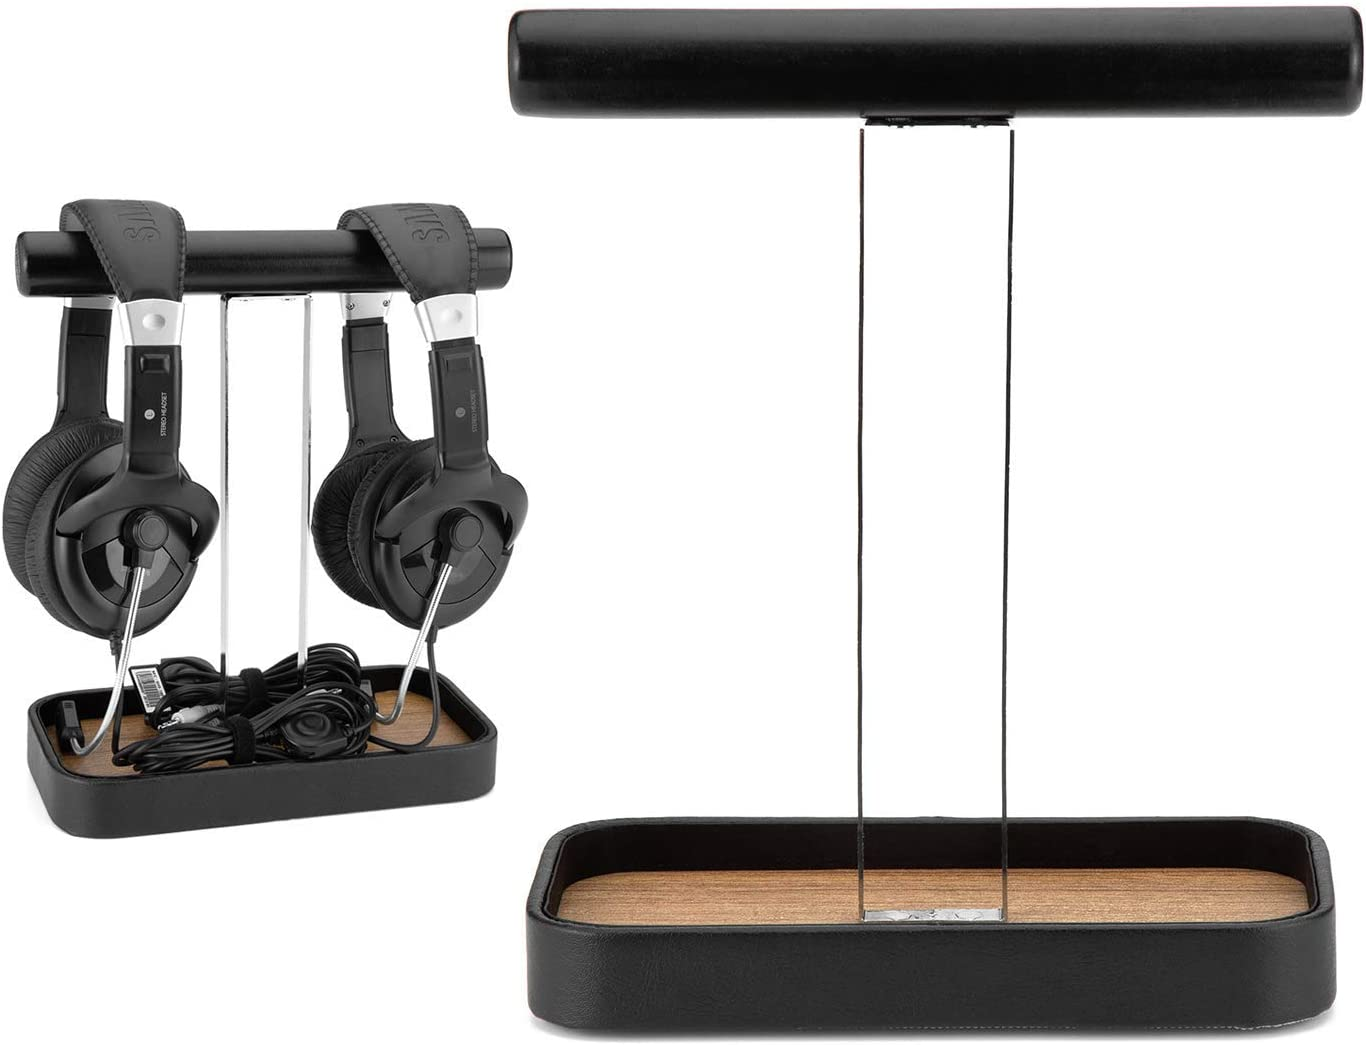 JackCubeDesign's Headphone Stand Dual Headset Holder Display Earphone Hanger Rack Support for 2 Headphones with Bamboo Tray and Cable Holder(8.3 x 4.3 x 10.4 inches) – :MK118S